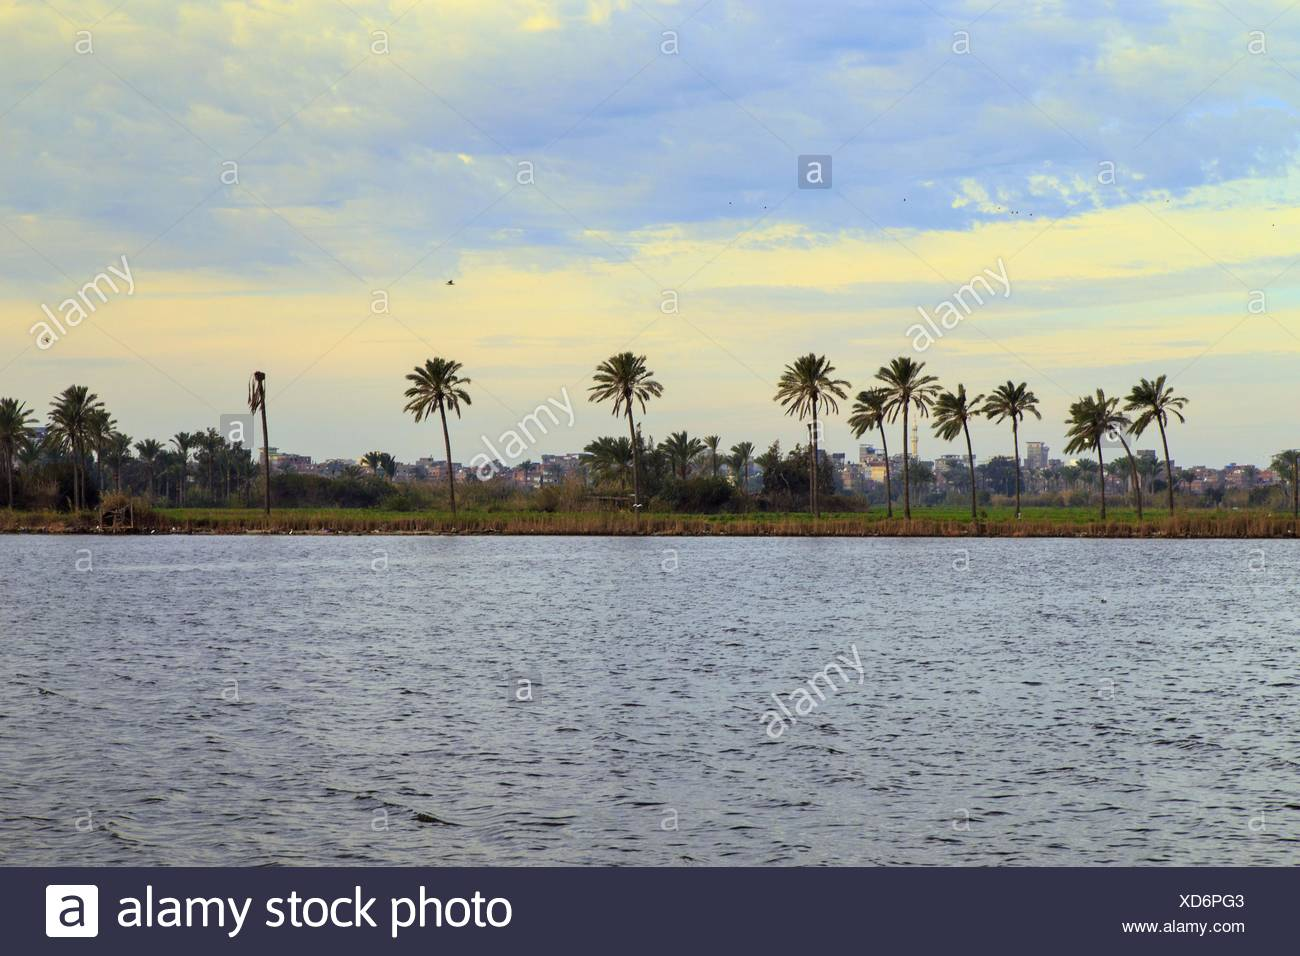 Palm Trees On Riverbank - Stock Image